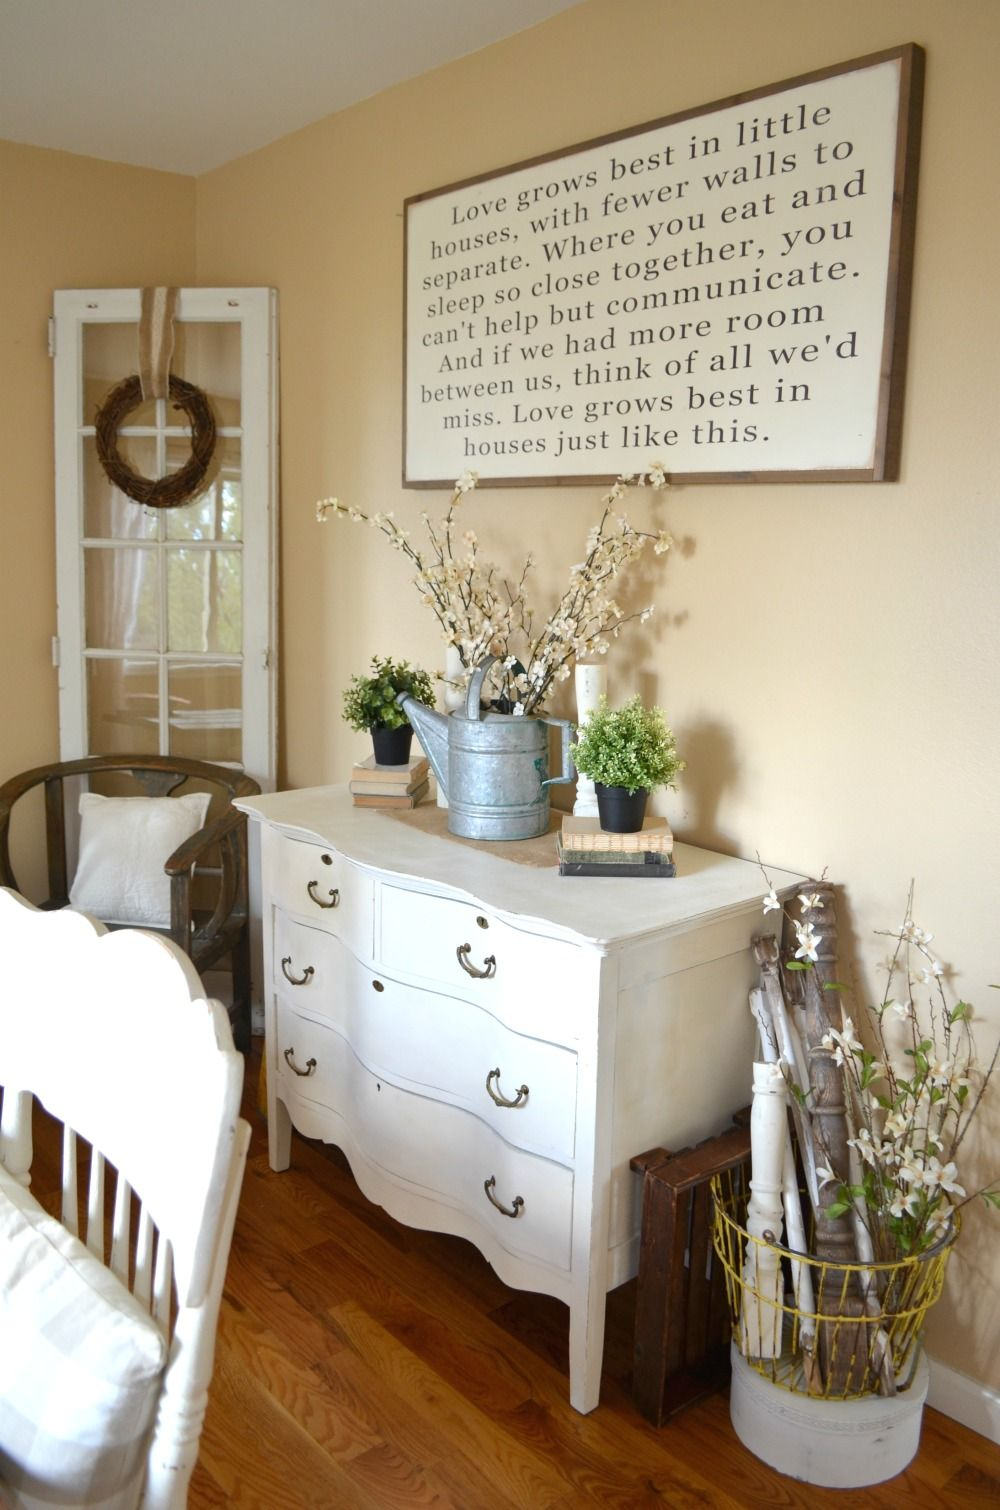 Farmhouse Chic Living Room Decor: Love Grows Best In Little Houses Sign